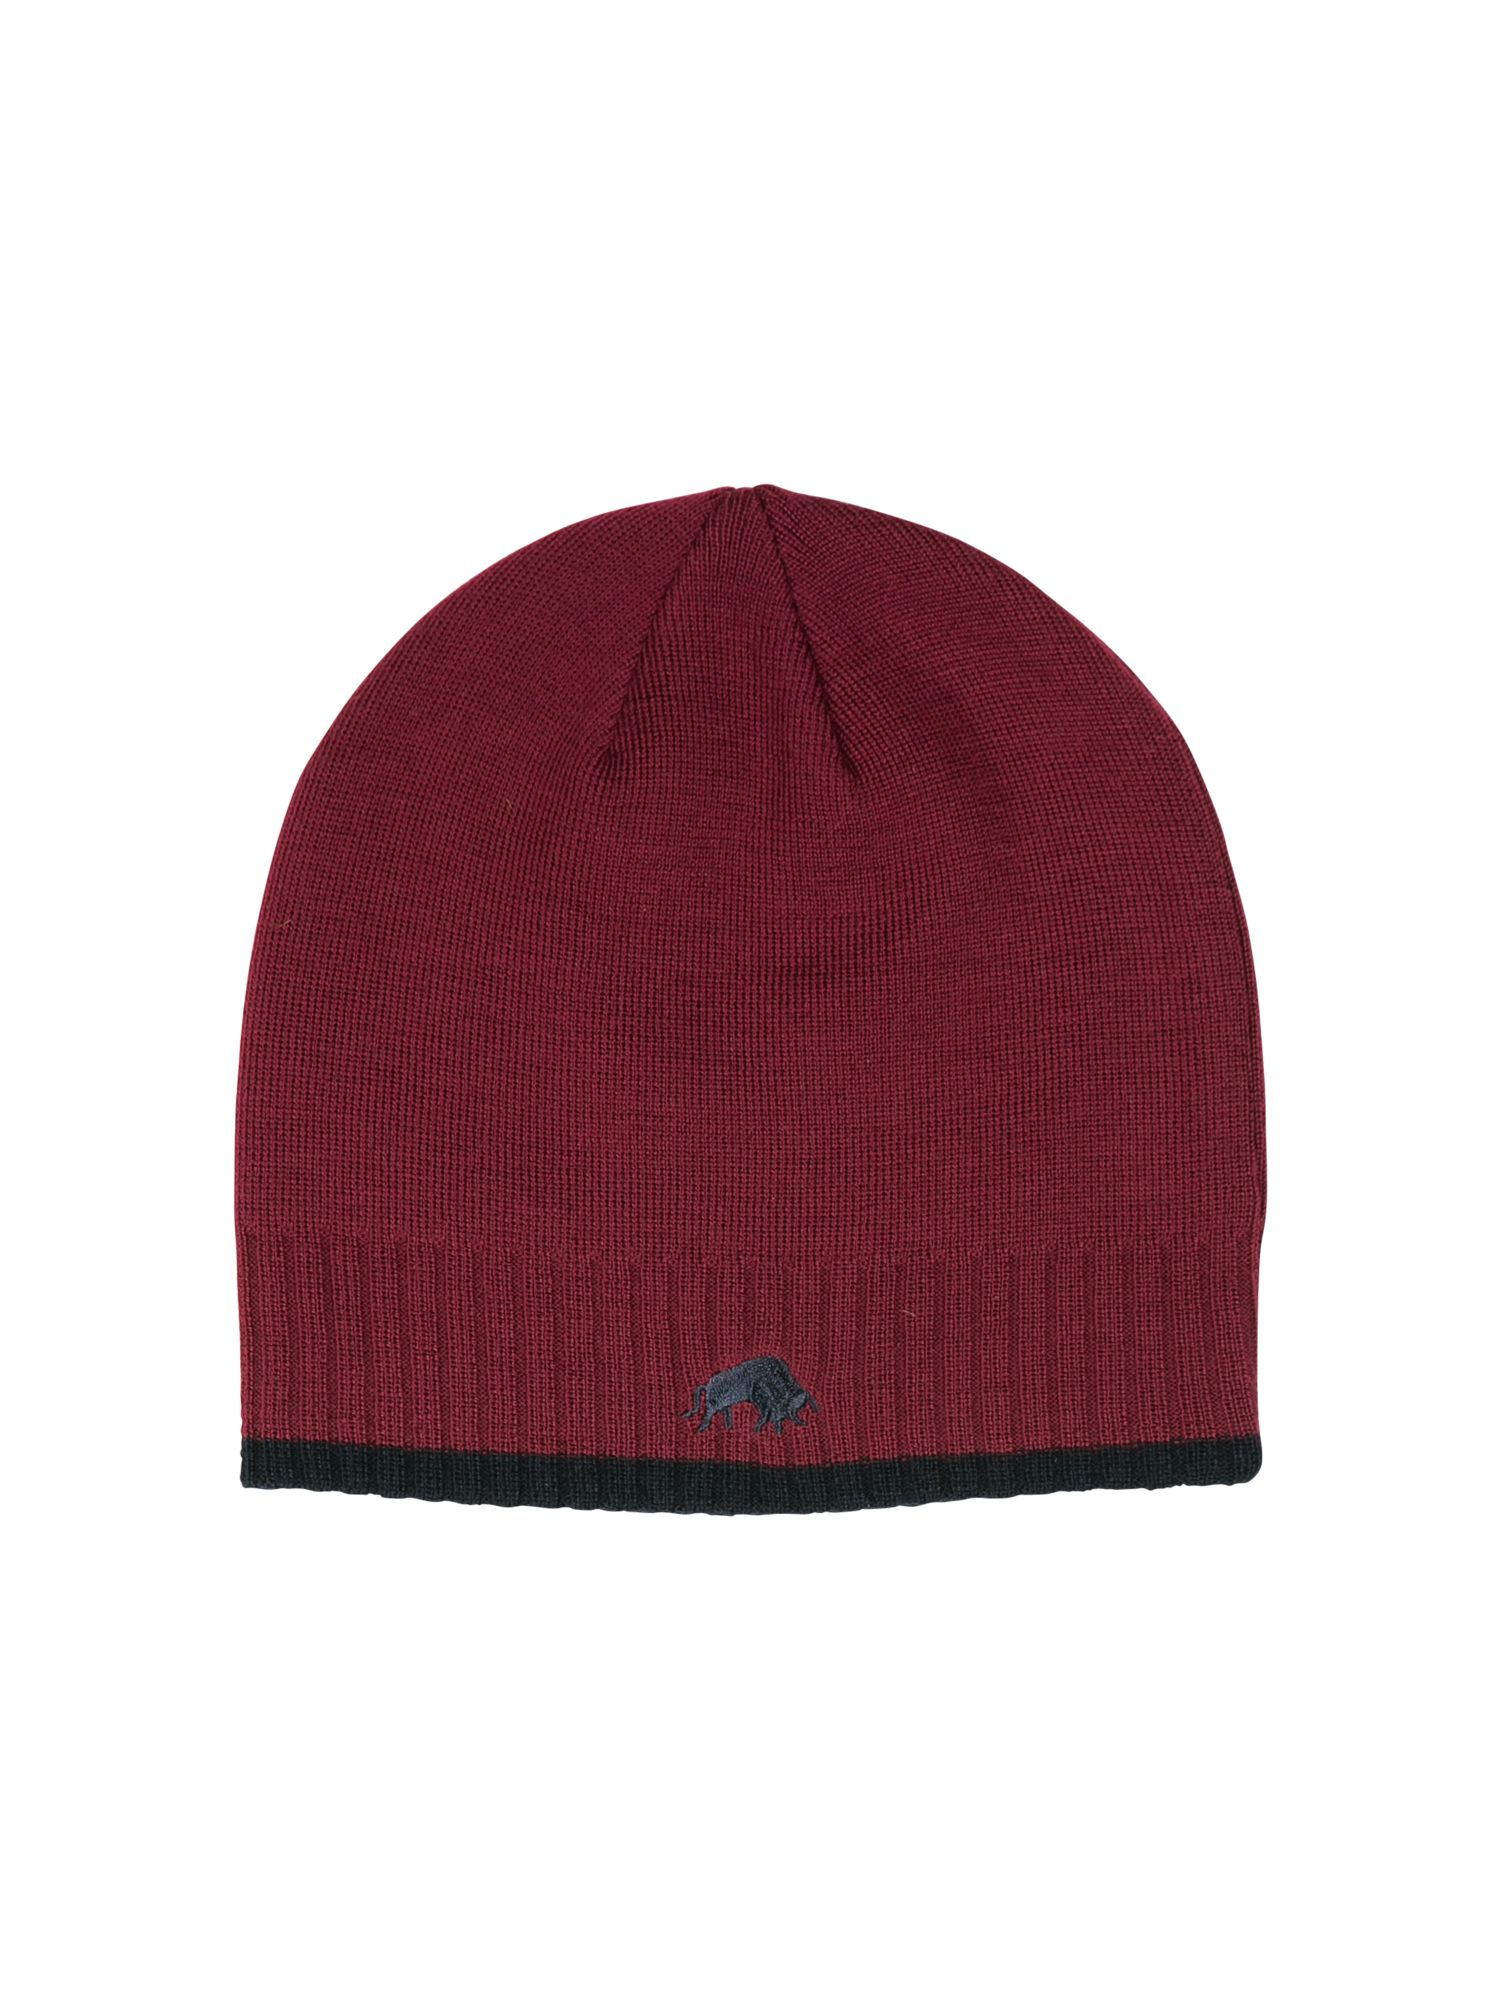 Rb wool hat claret